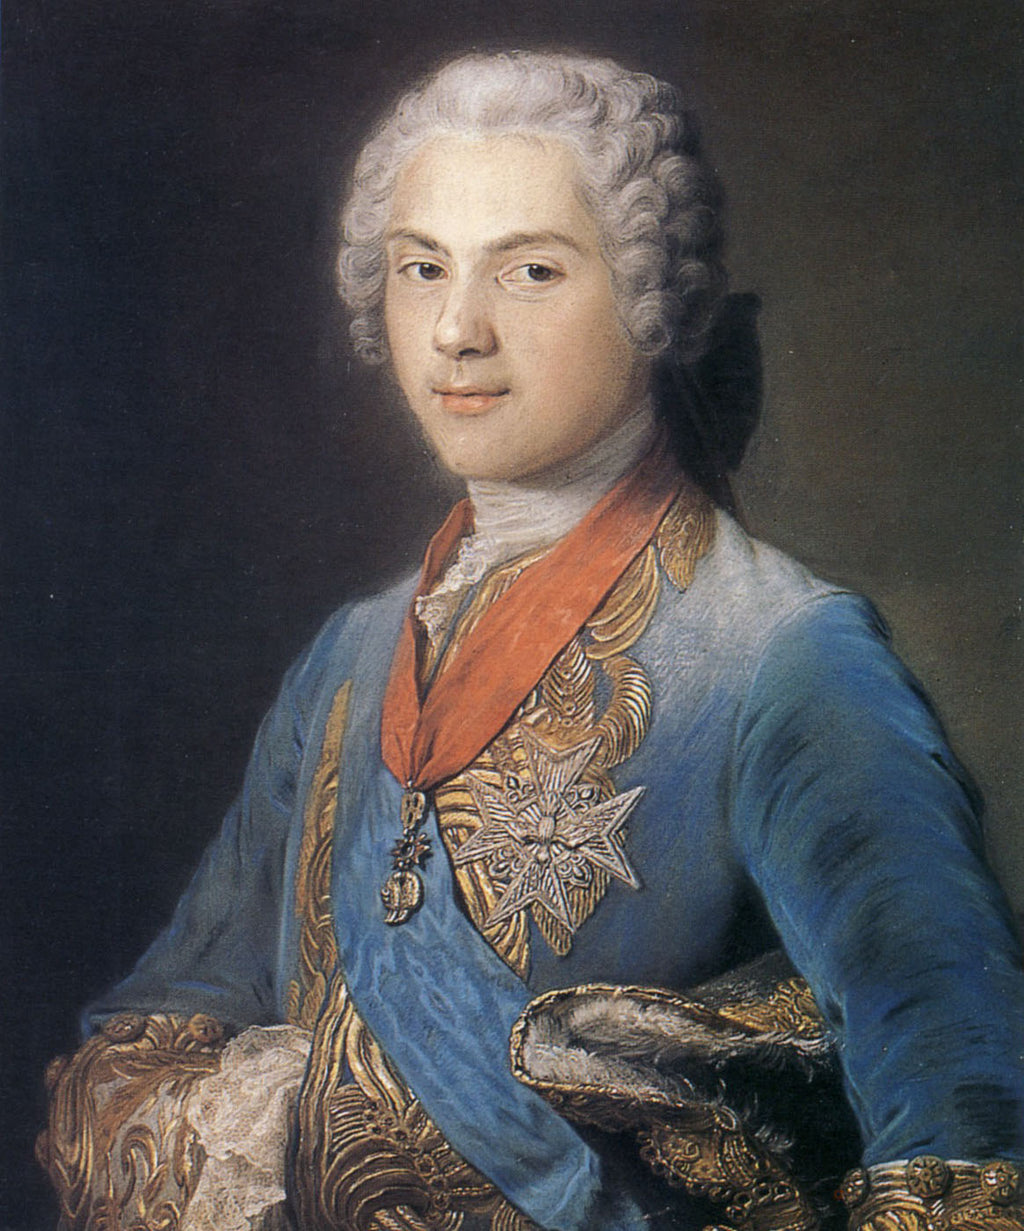 Louis of France, Dauphin, son of Louis XV